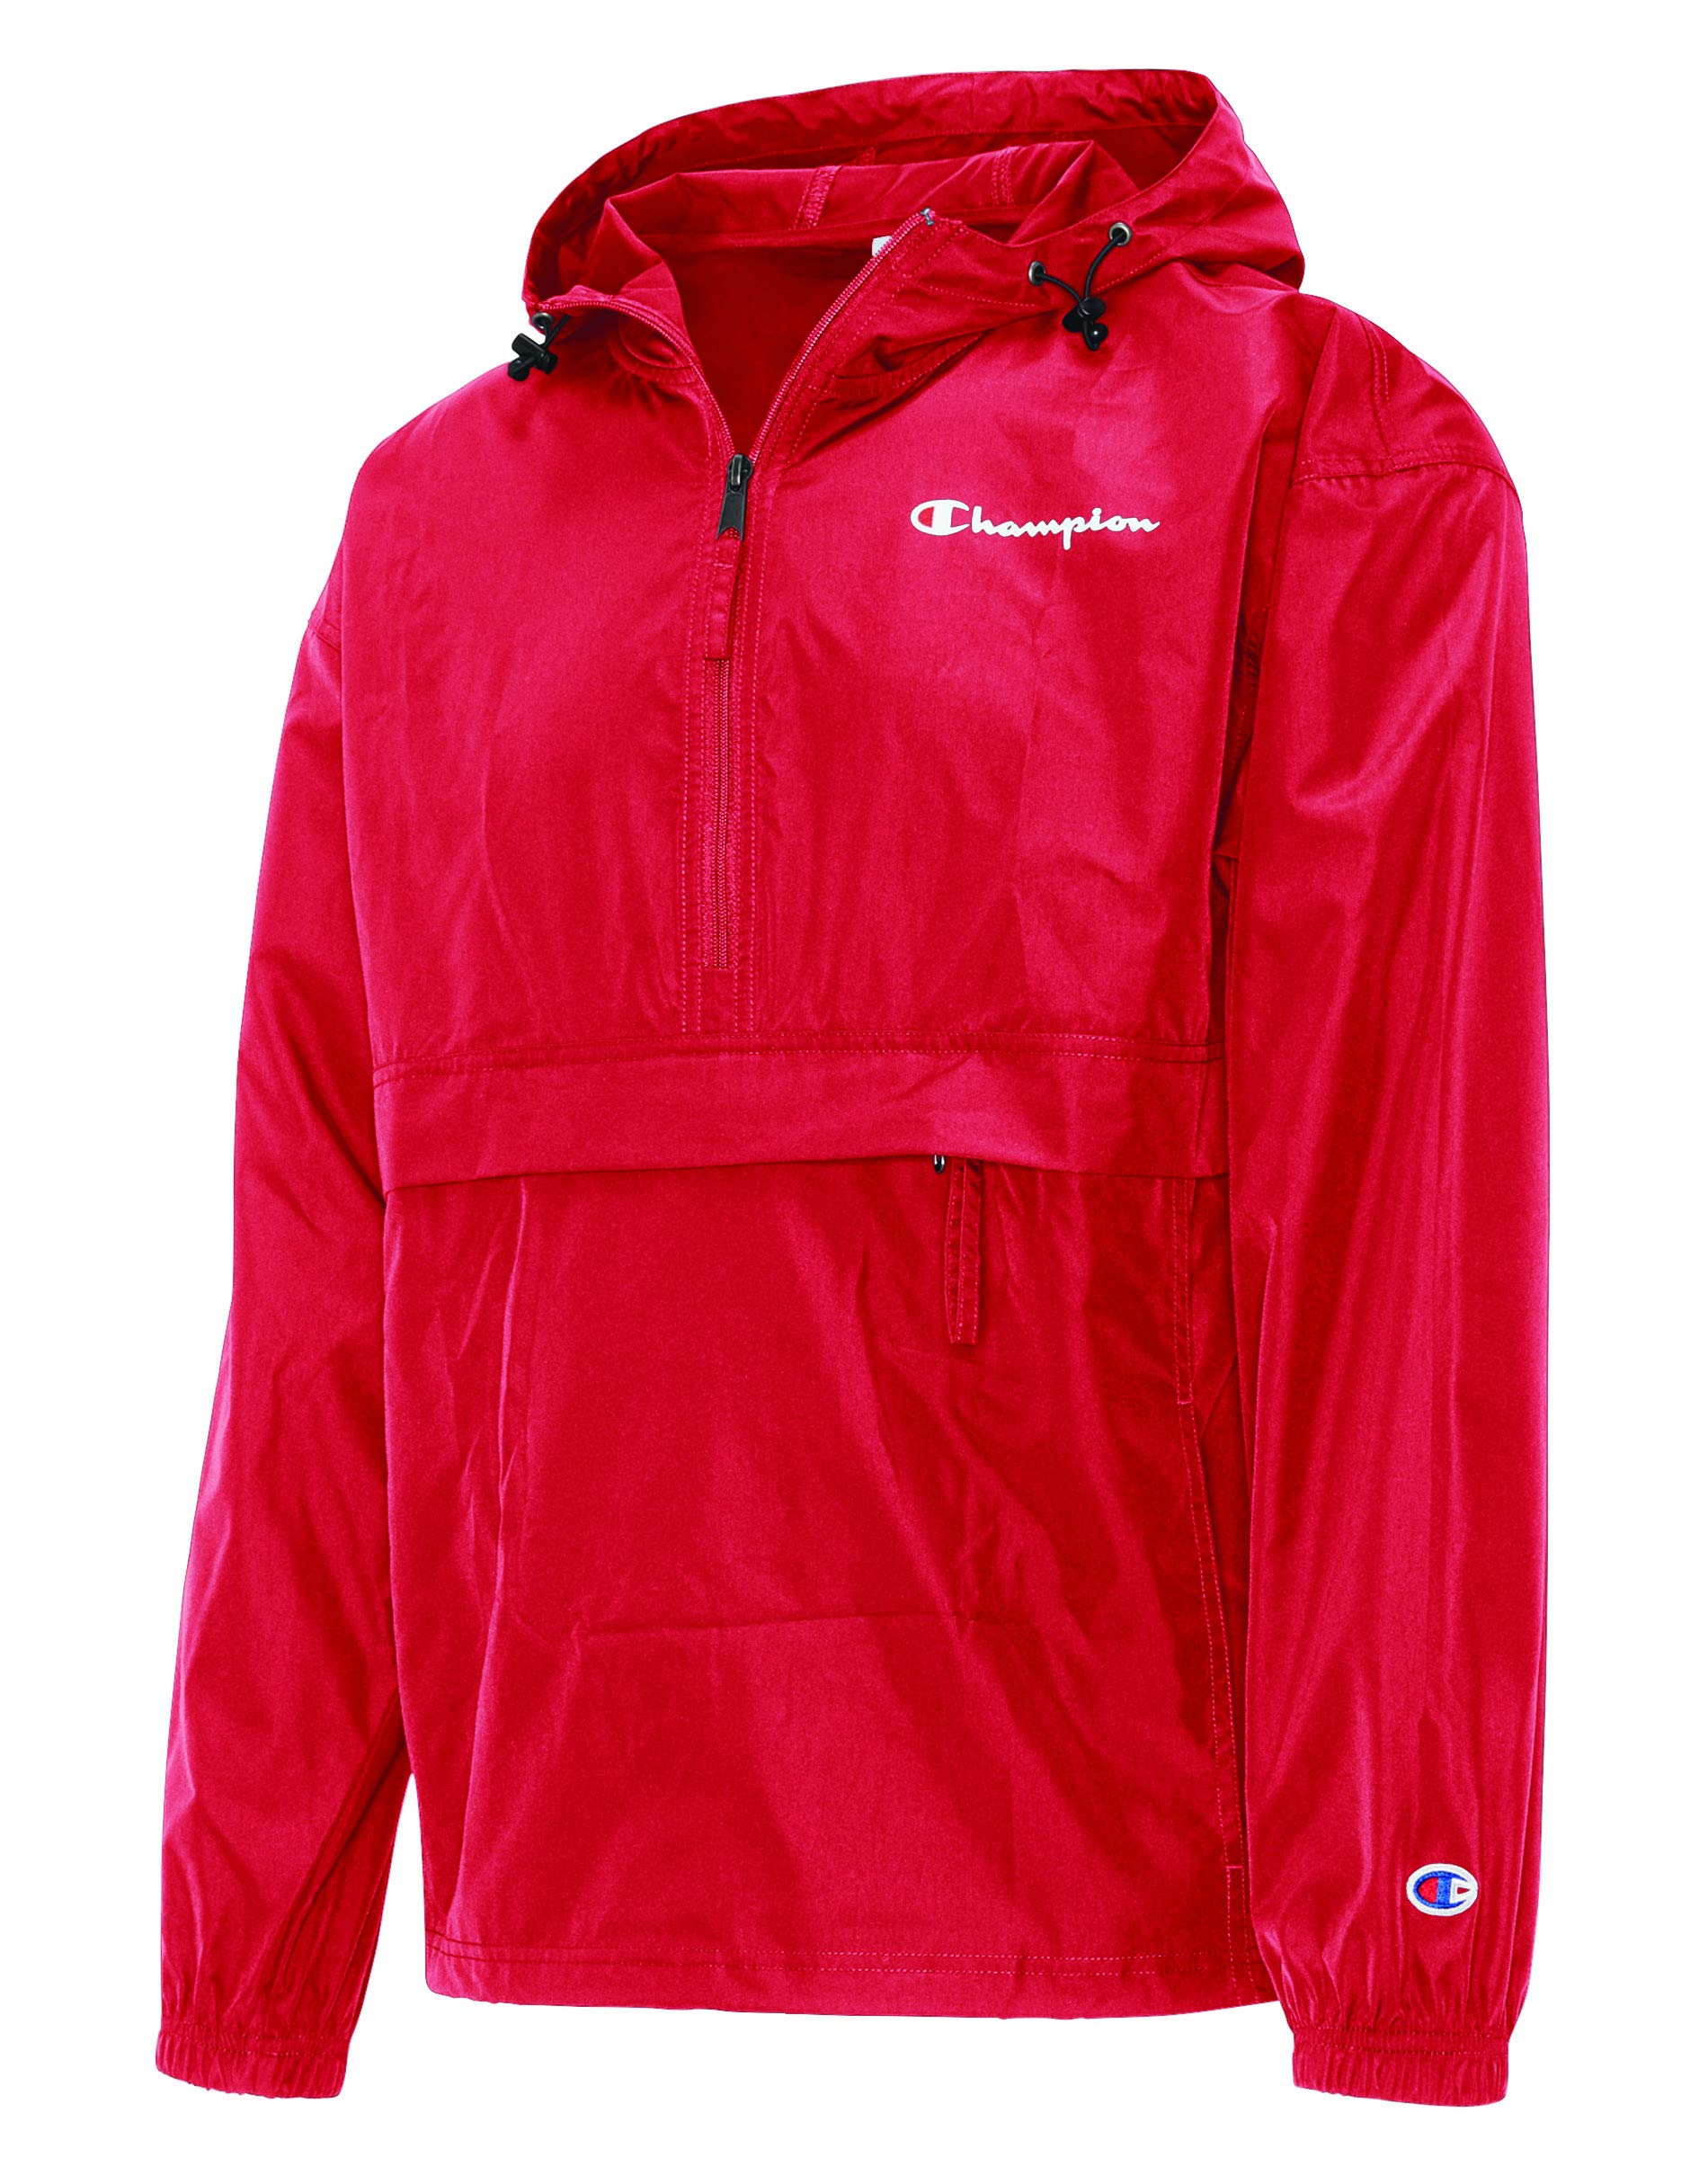 Champion Men's Packable Jacket, Scarlet, Medium by Champion